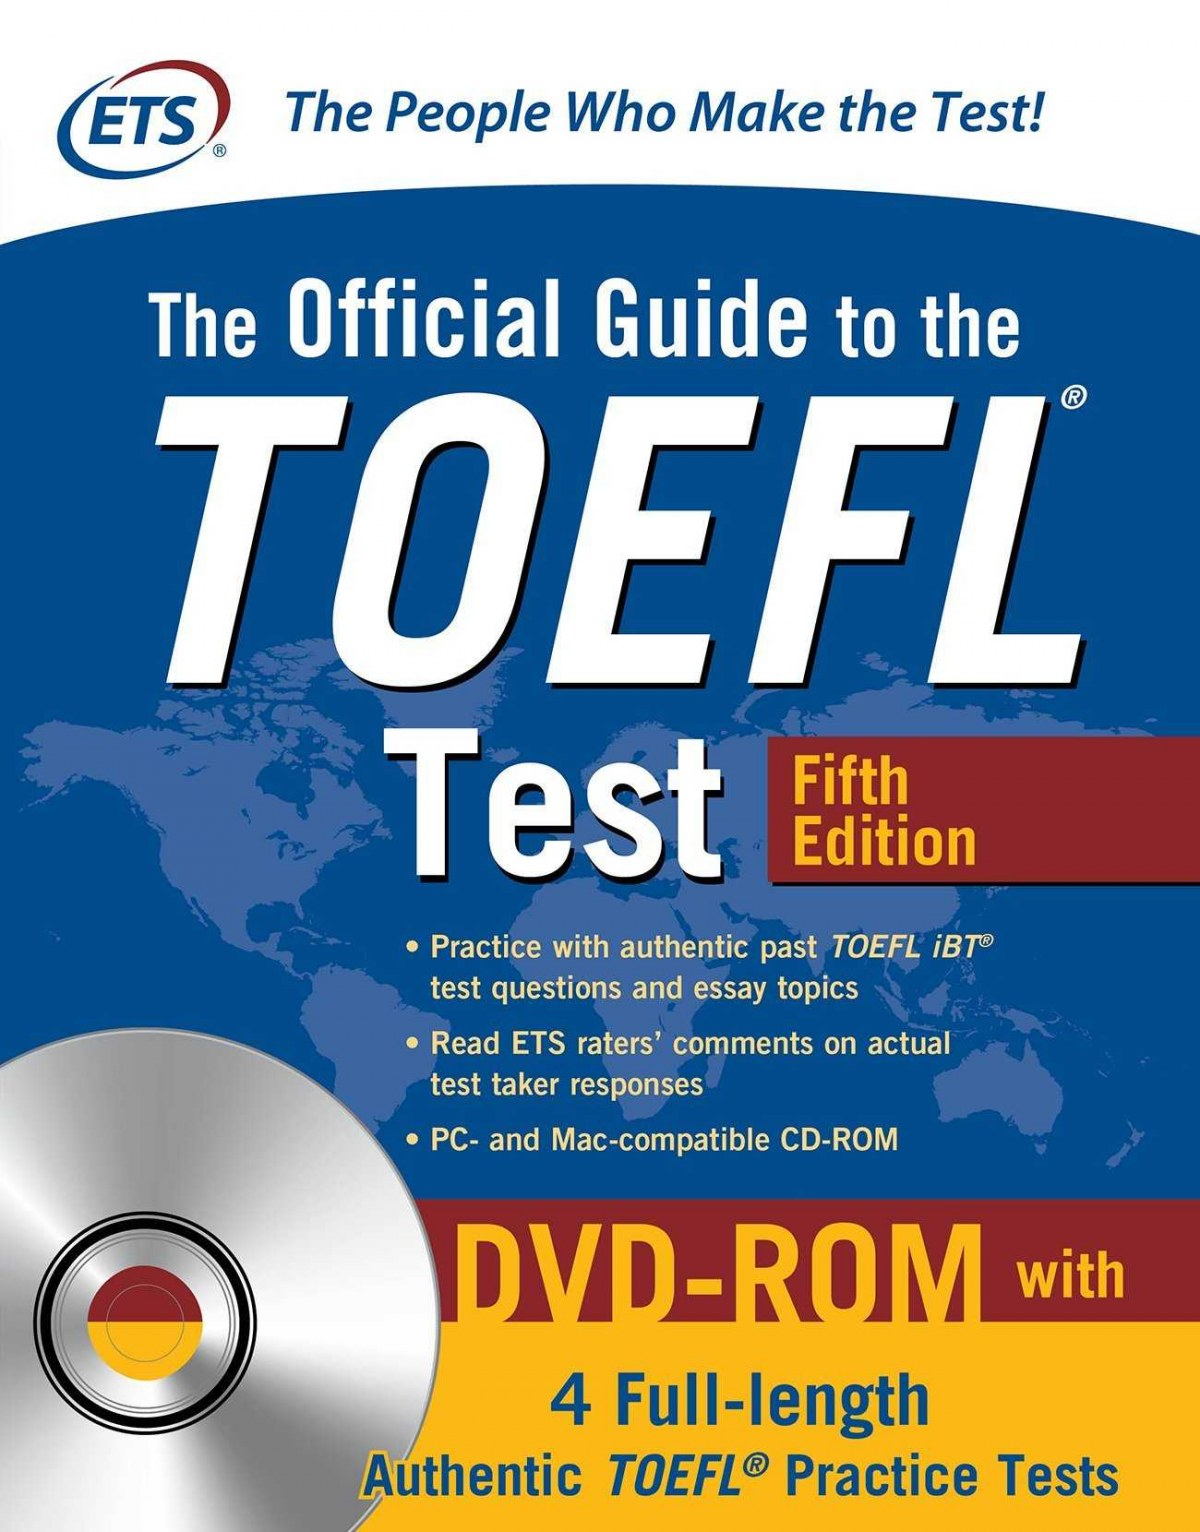 OFFICIAL GUIDE TO THE TOELF WITH DVD